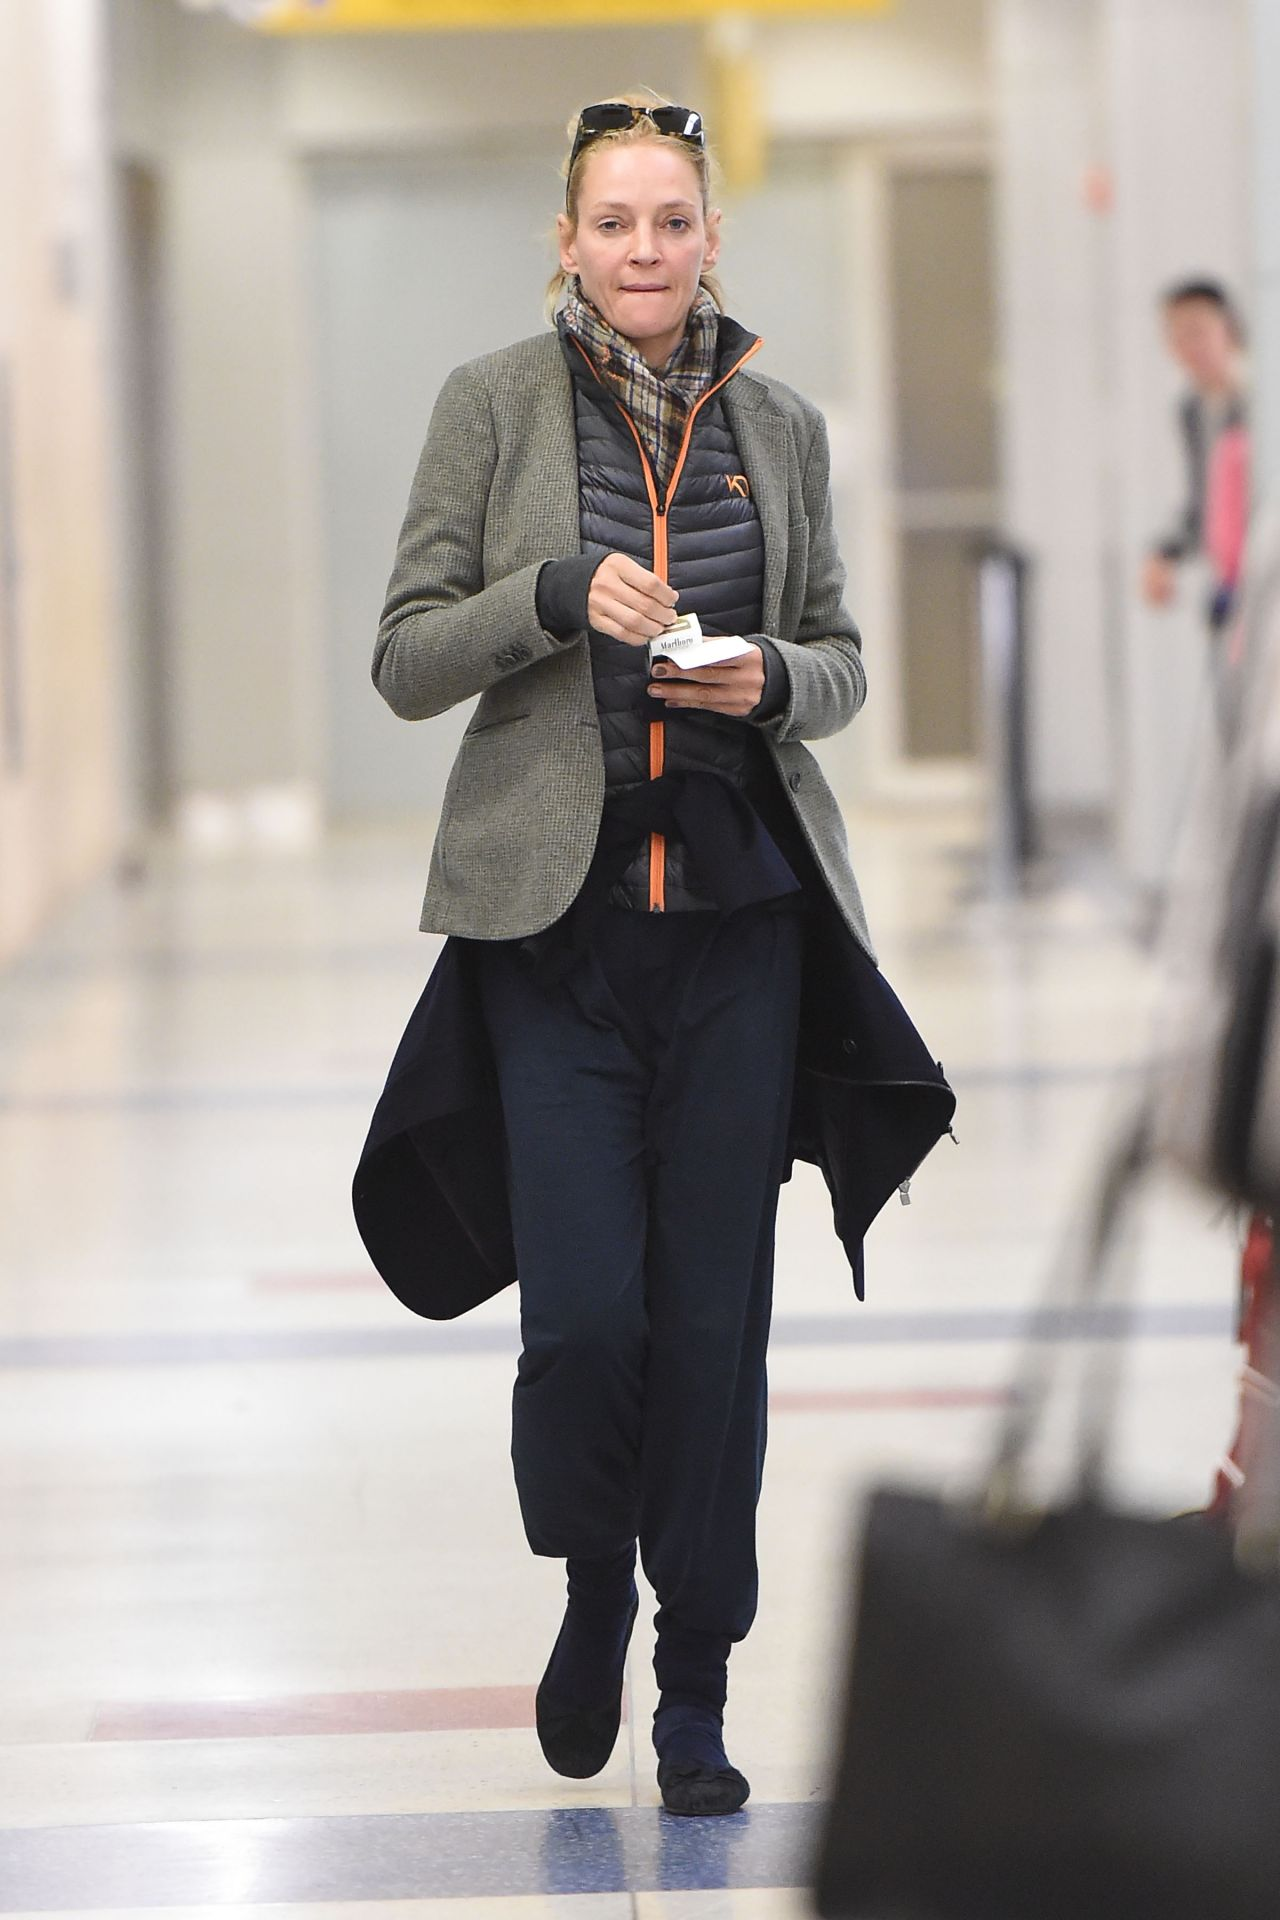 Uma Thurman At Jfk Airport In New York 4 28 2016